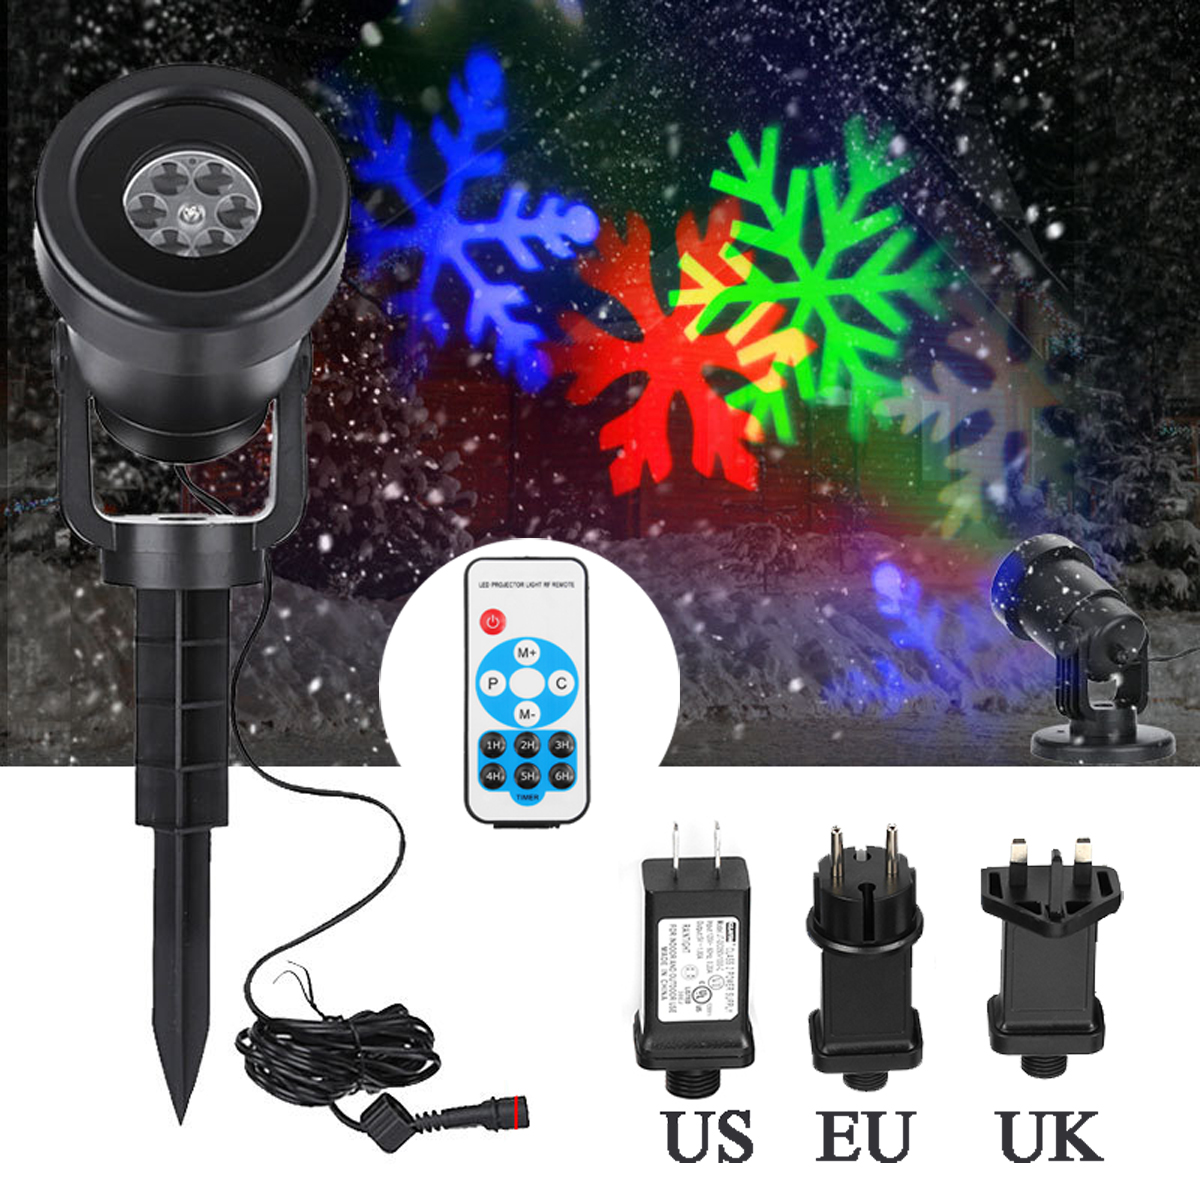 12 Patterns Outdoor LED RGB Laser Stage Light Garden Landscape Projector Moving Laser Stage Light for DJ Disco Christmas Party 12 patterns outdoor led rgb laser stage light garden landscape projector moving laser stage light for dj disco christmas party